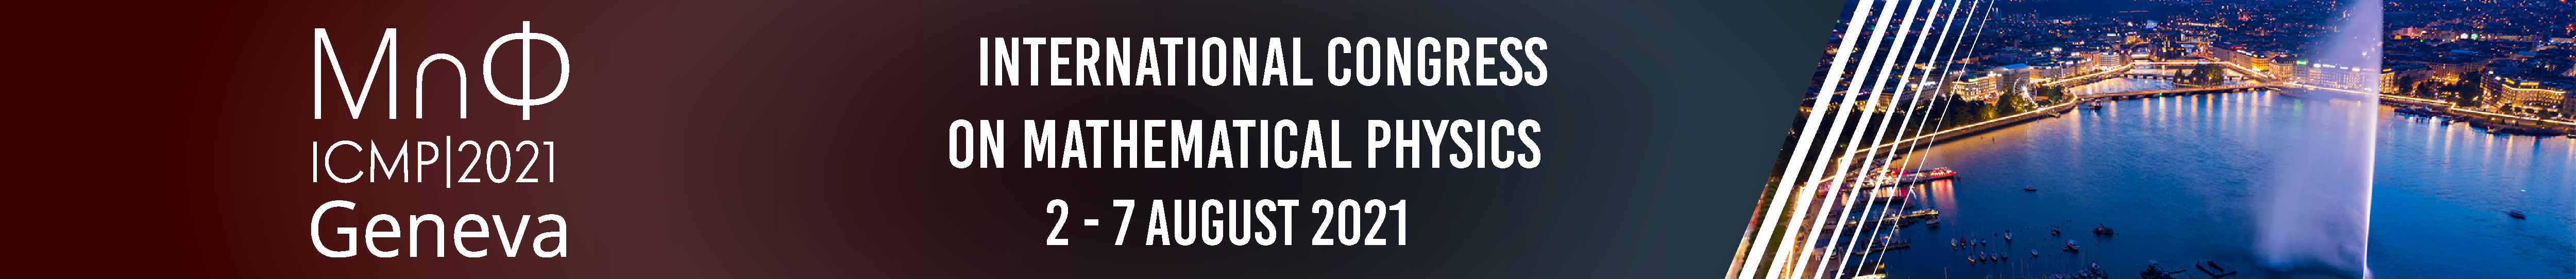 Icmp 2021 International Association Of Mathematical Physics